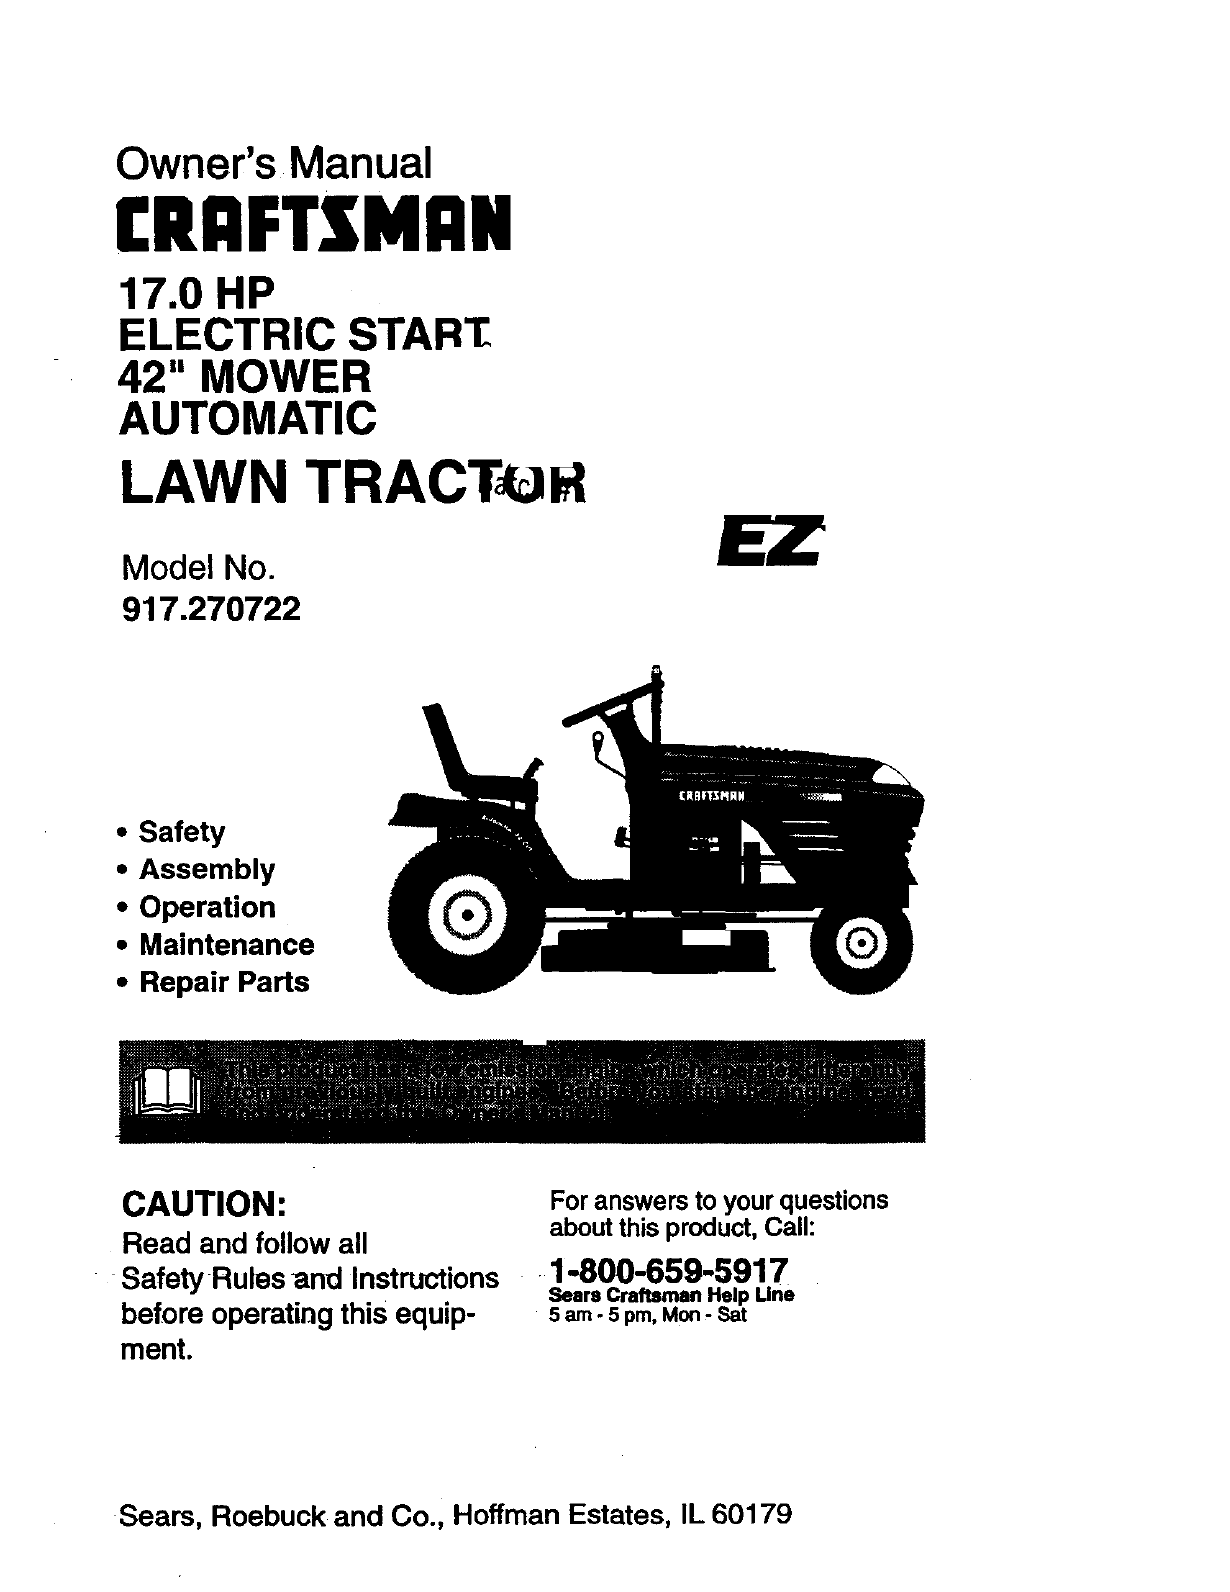 Craftsman Riding Mower Steering Problems : craftsman, riding, mower, steering, problems, Craftsman, 917270722, Manual, TRACTOR, Manuals, Guides, 98100084